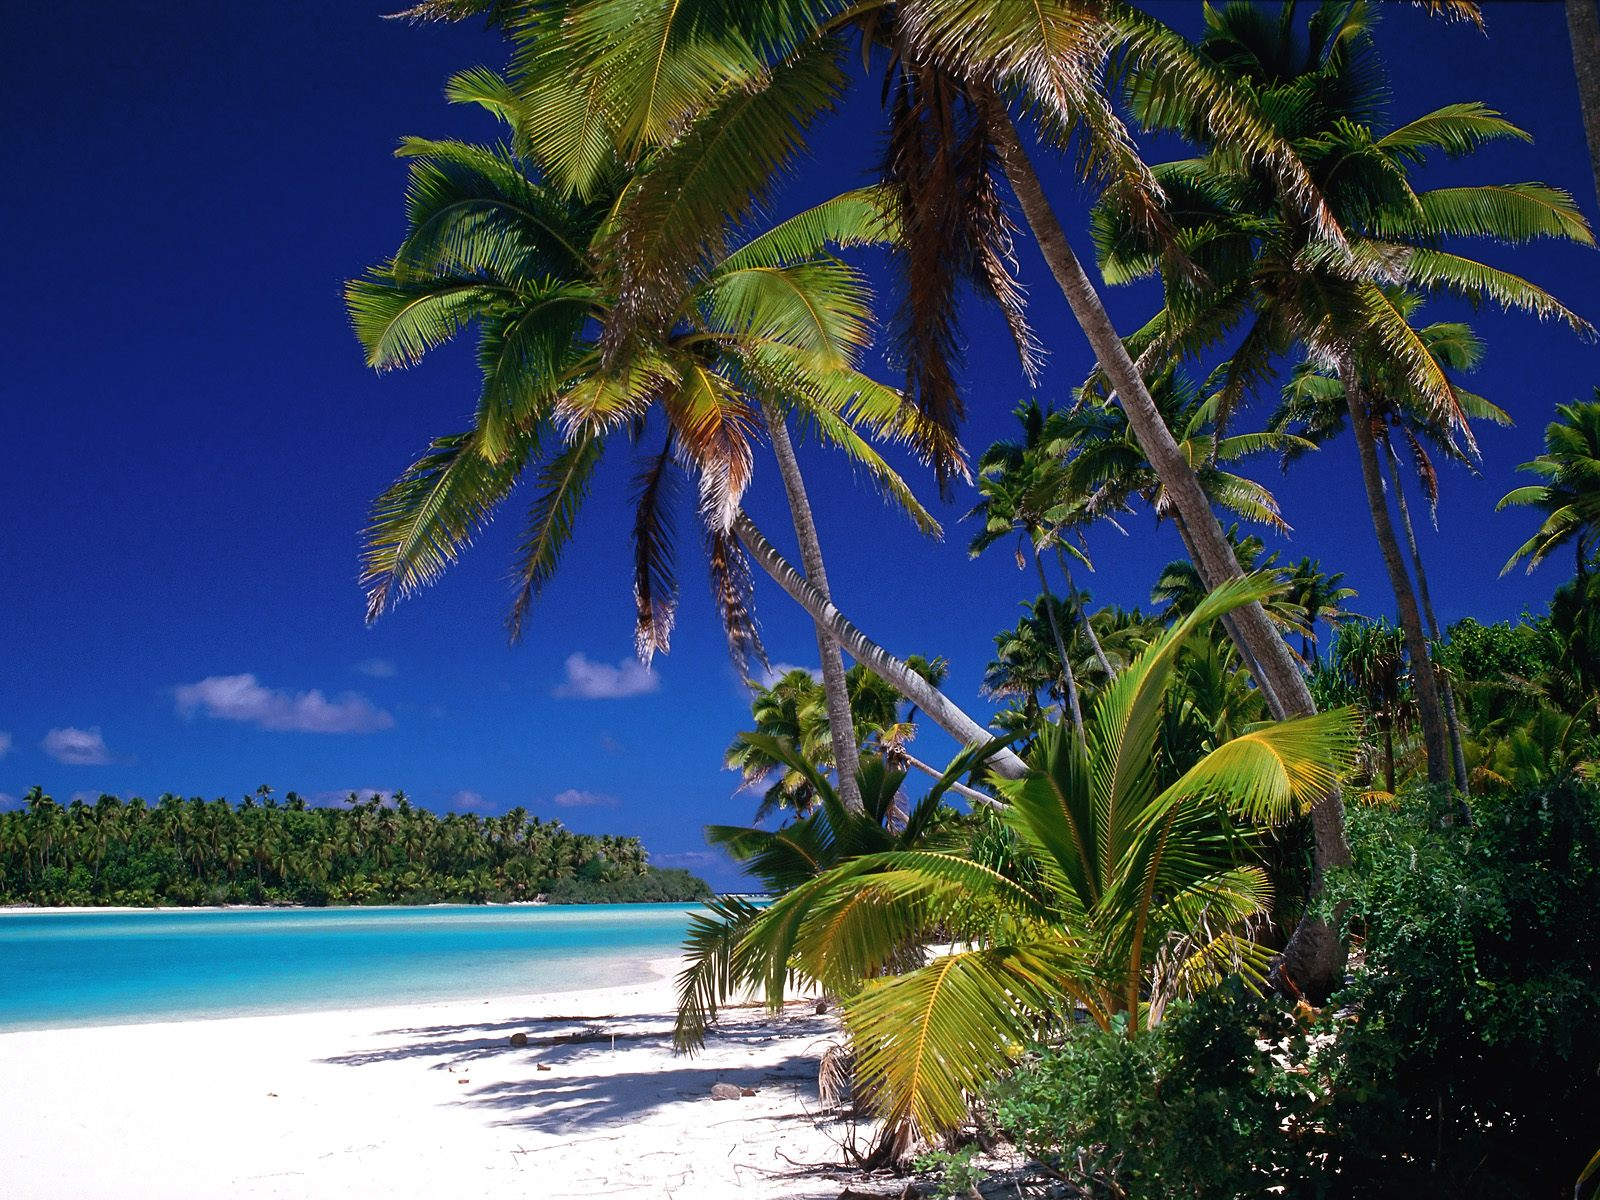 aitutaki-lagoon-cook-islands